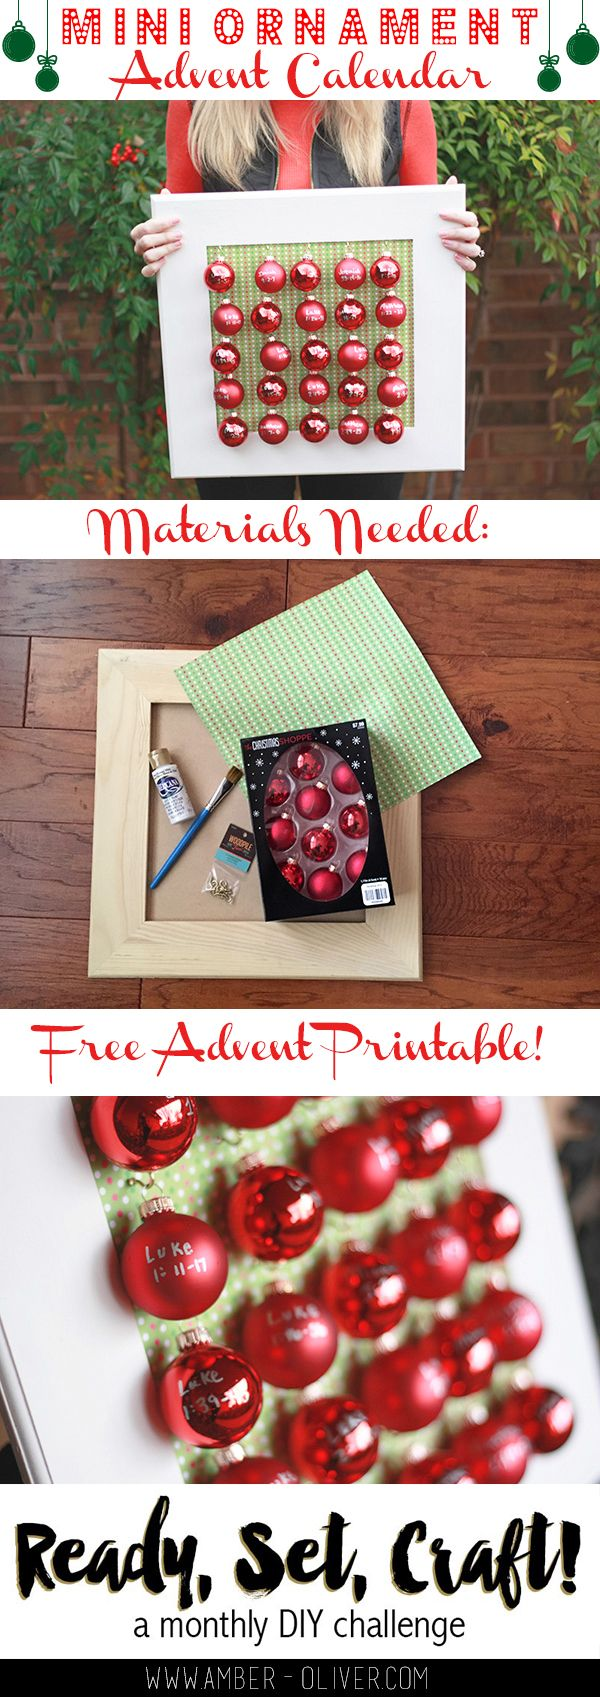 Use mini ornaments to make an advent calendar! | Amber-Oliver.com